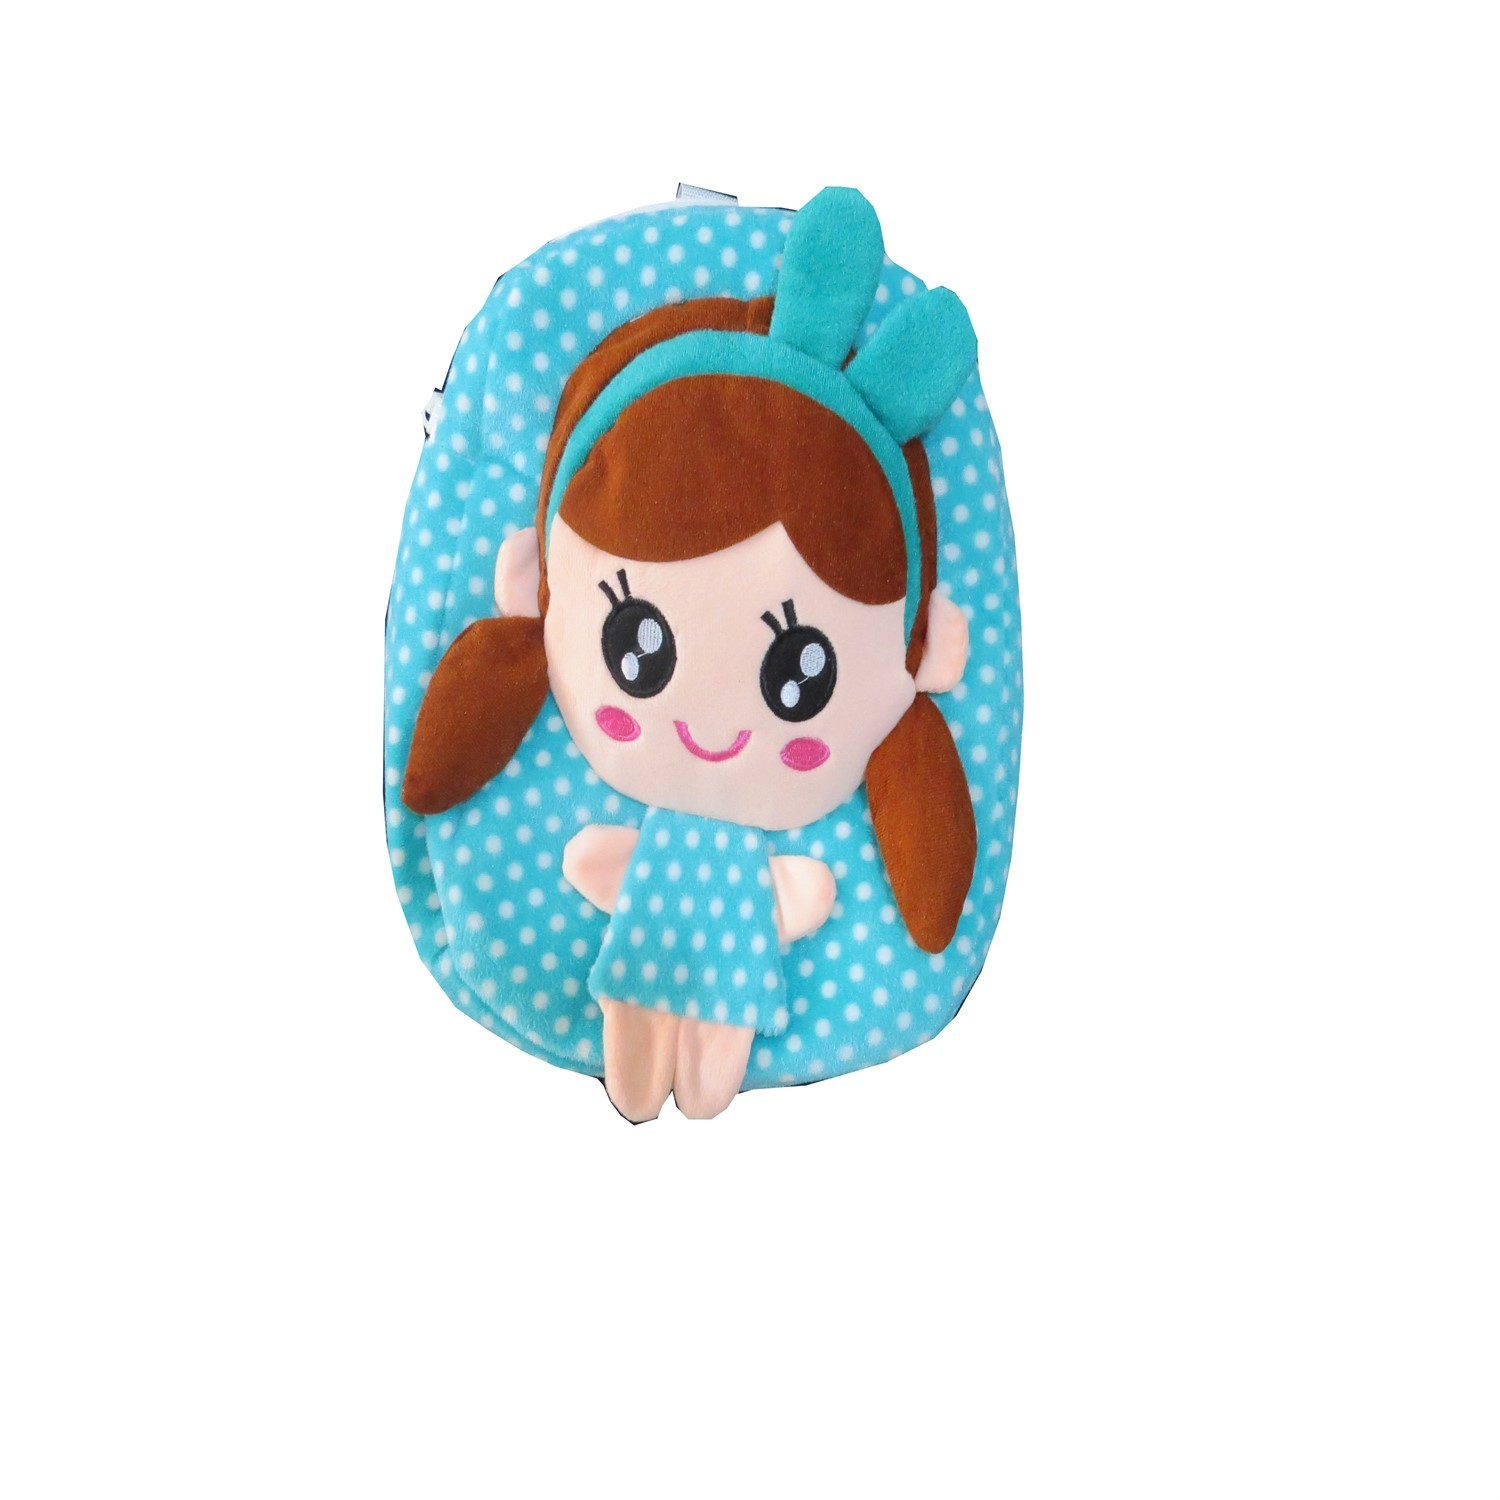 products  Girl's bag with green design